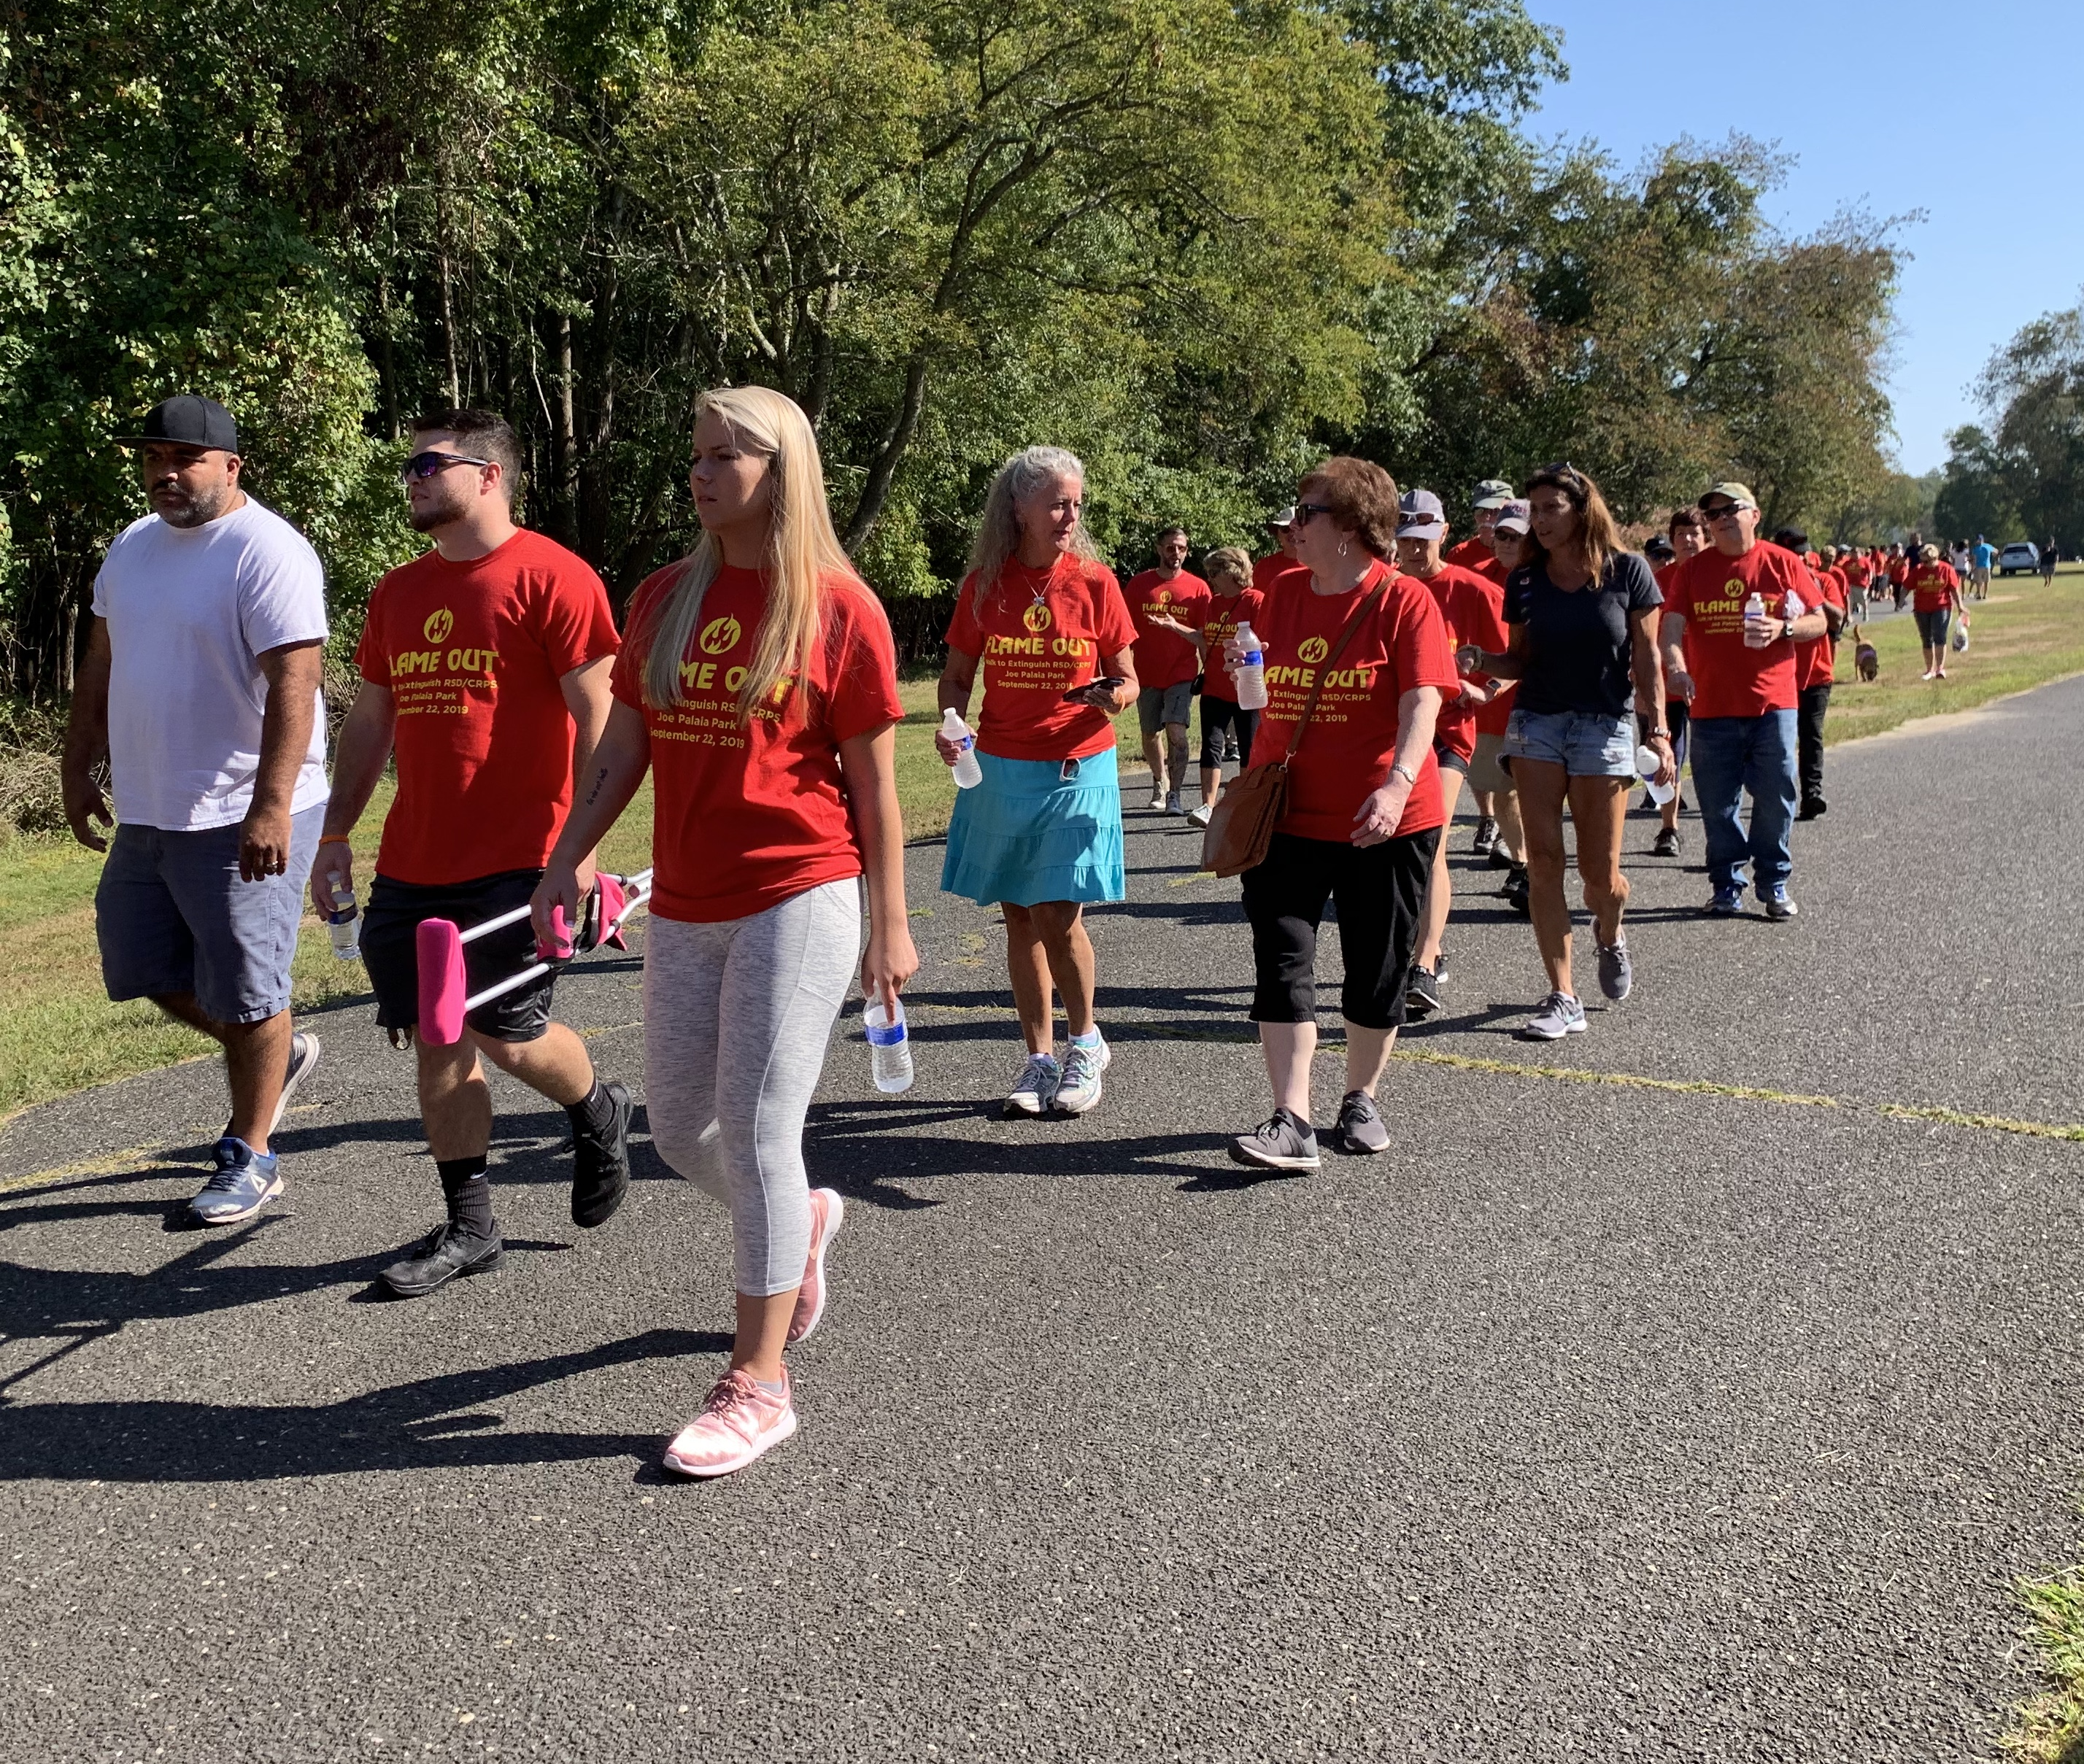 The Inaugural Flame-Out - A Walk to Extinguish RSD/CRPS (2019)